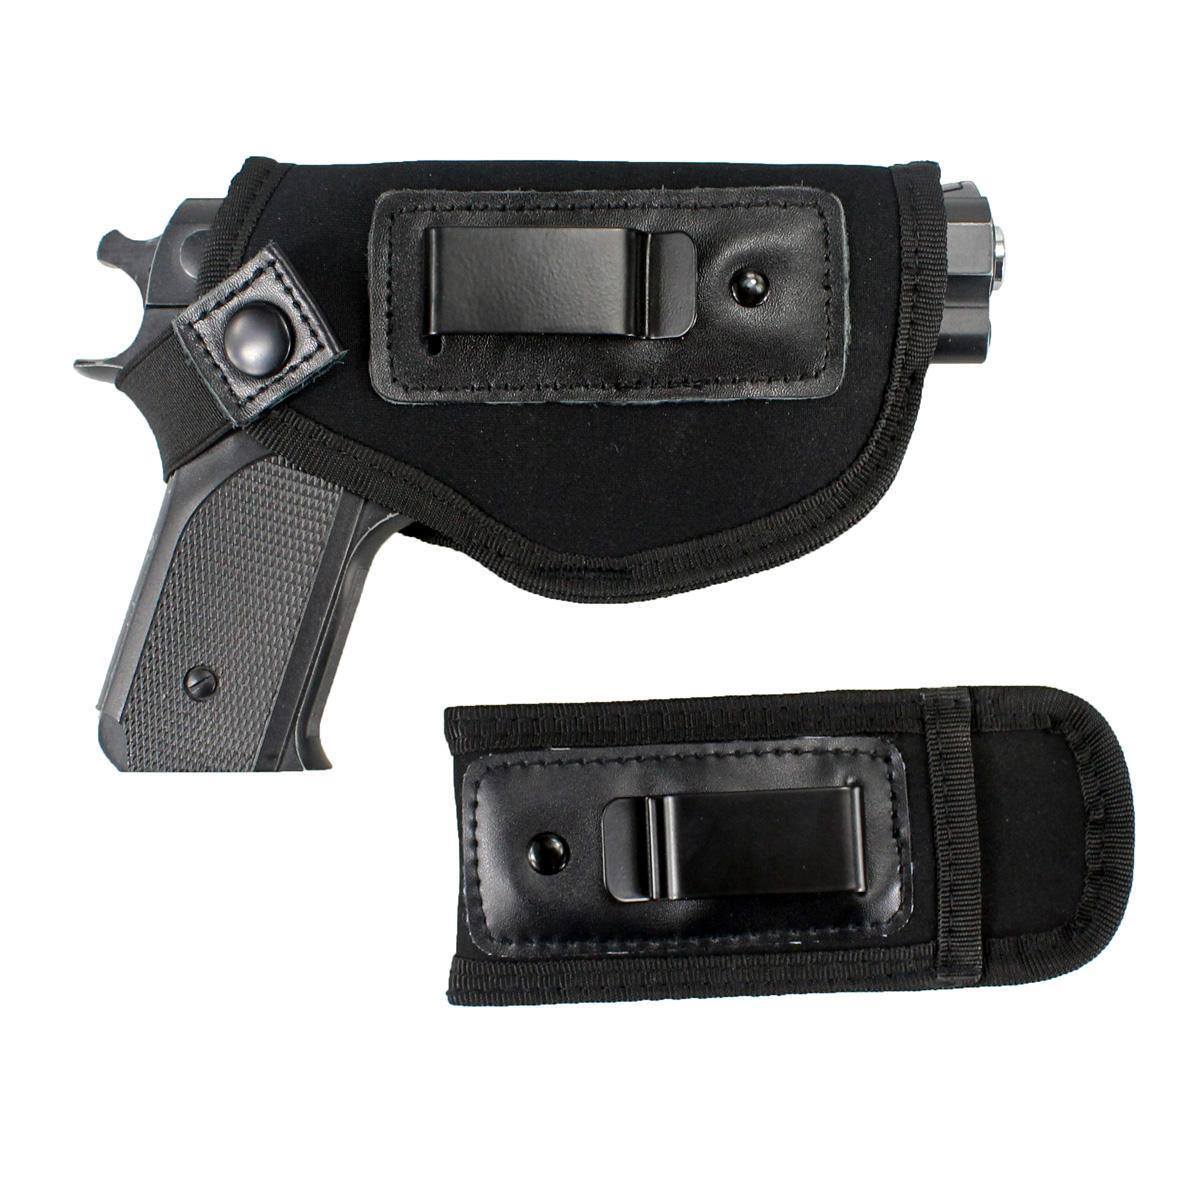 Universal Gun Holster Pouch Concealed Carry IWB Holster With Mag Holster